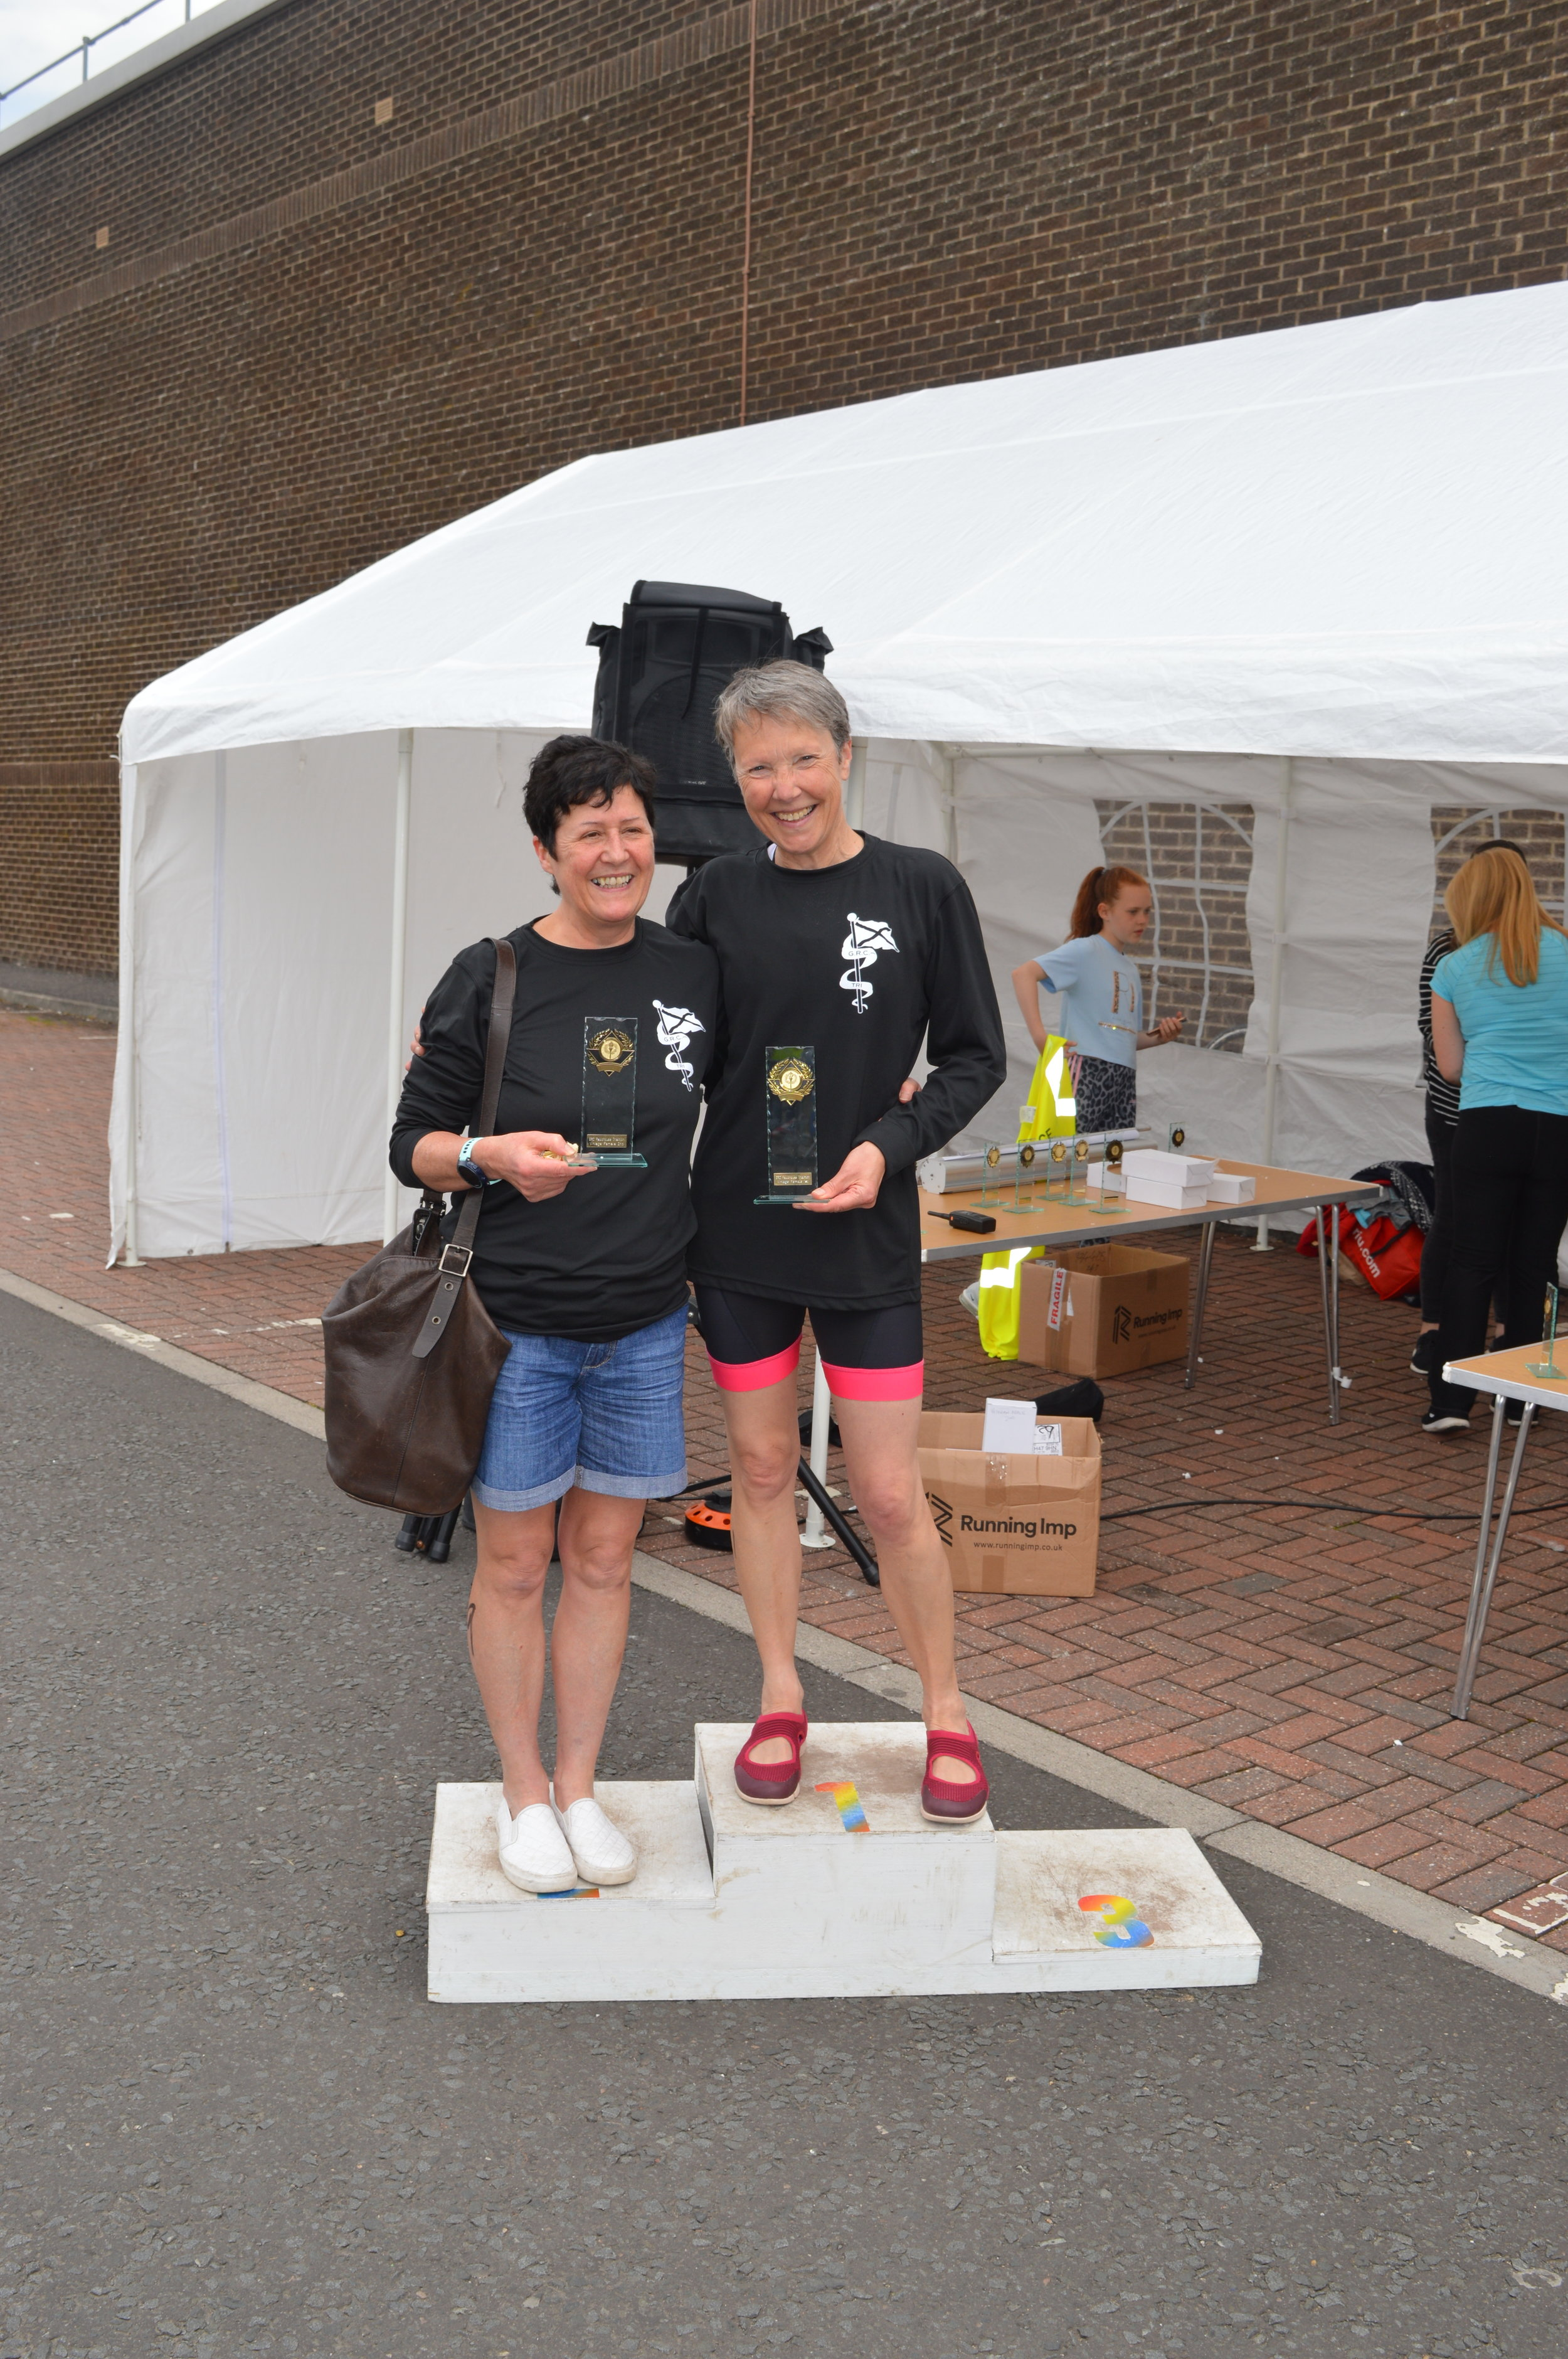 Jill Horsburgh on the podium at the Fauldhouse triathlon